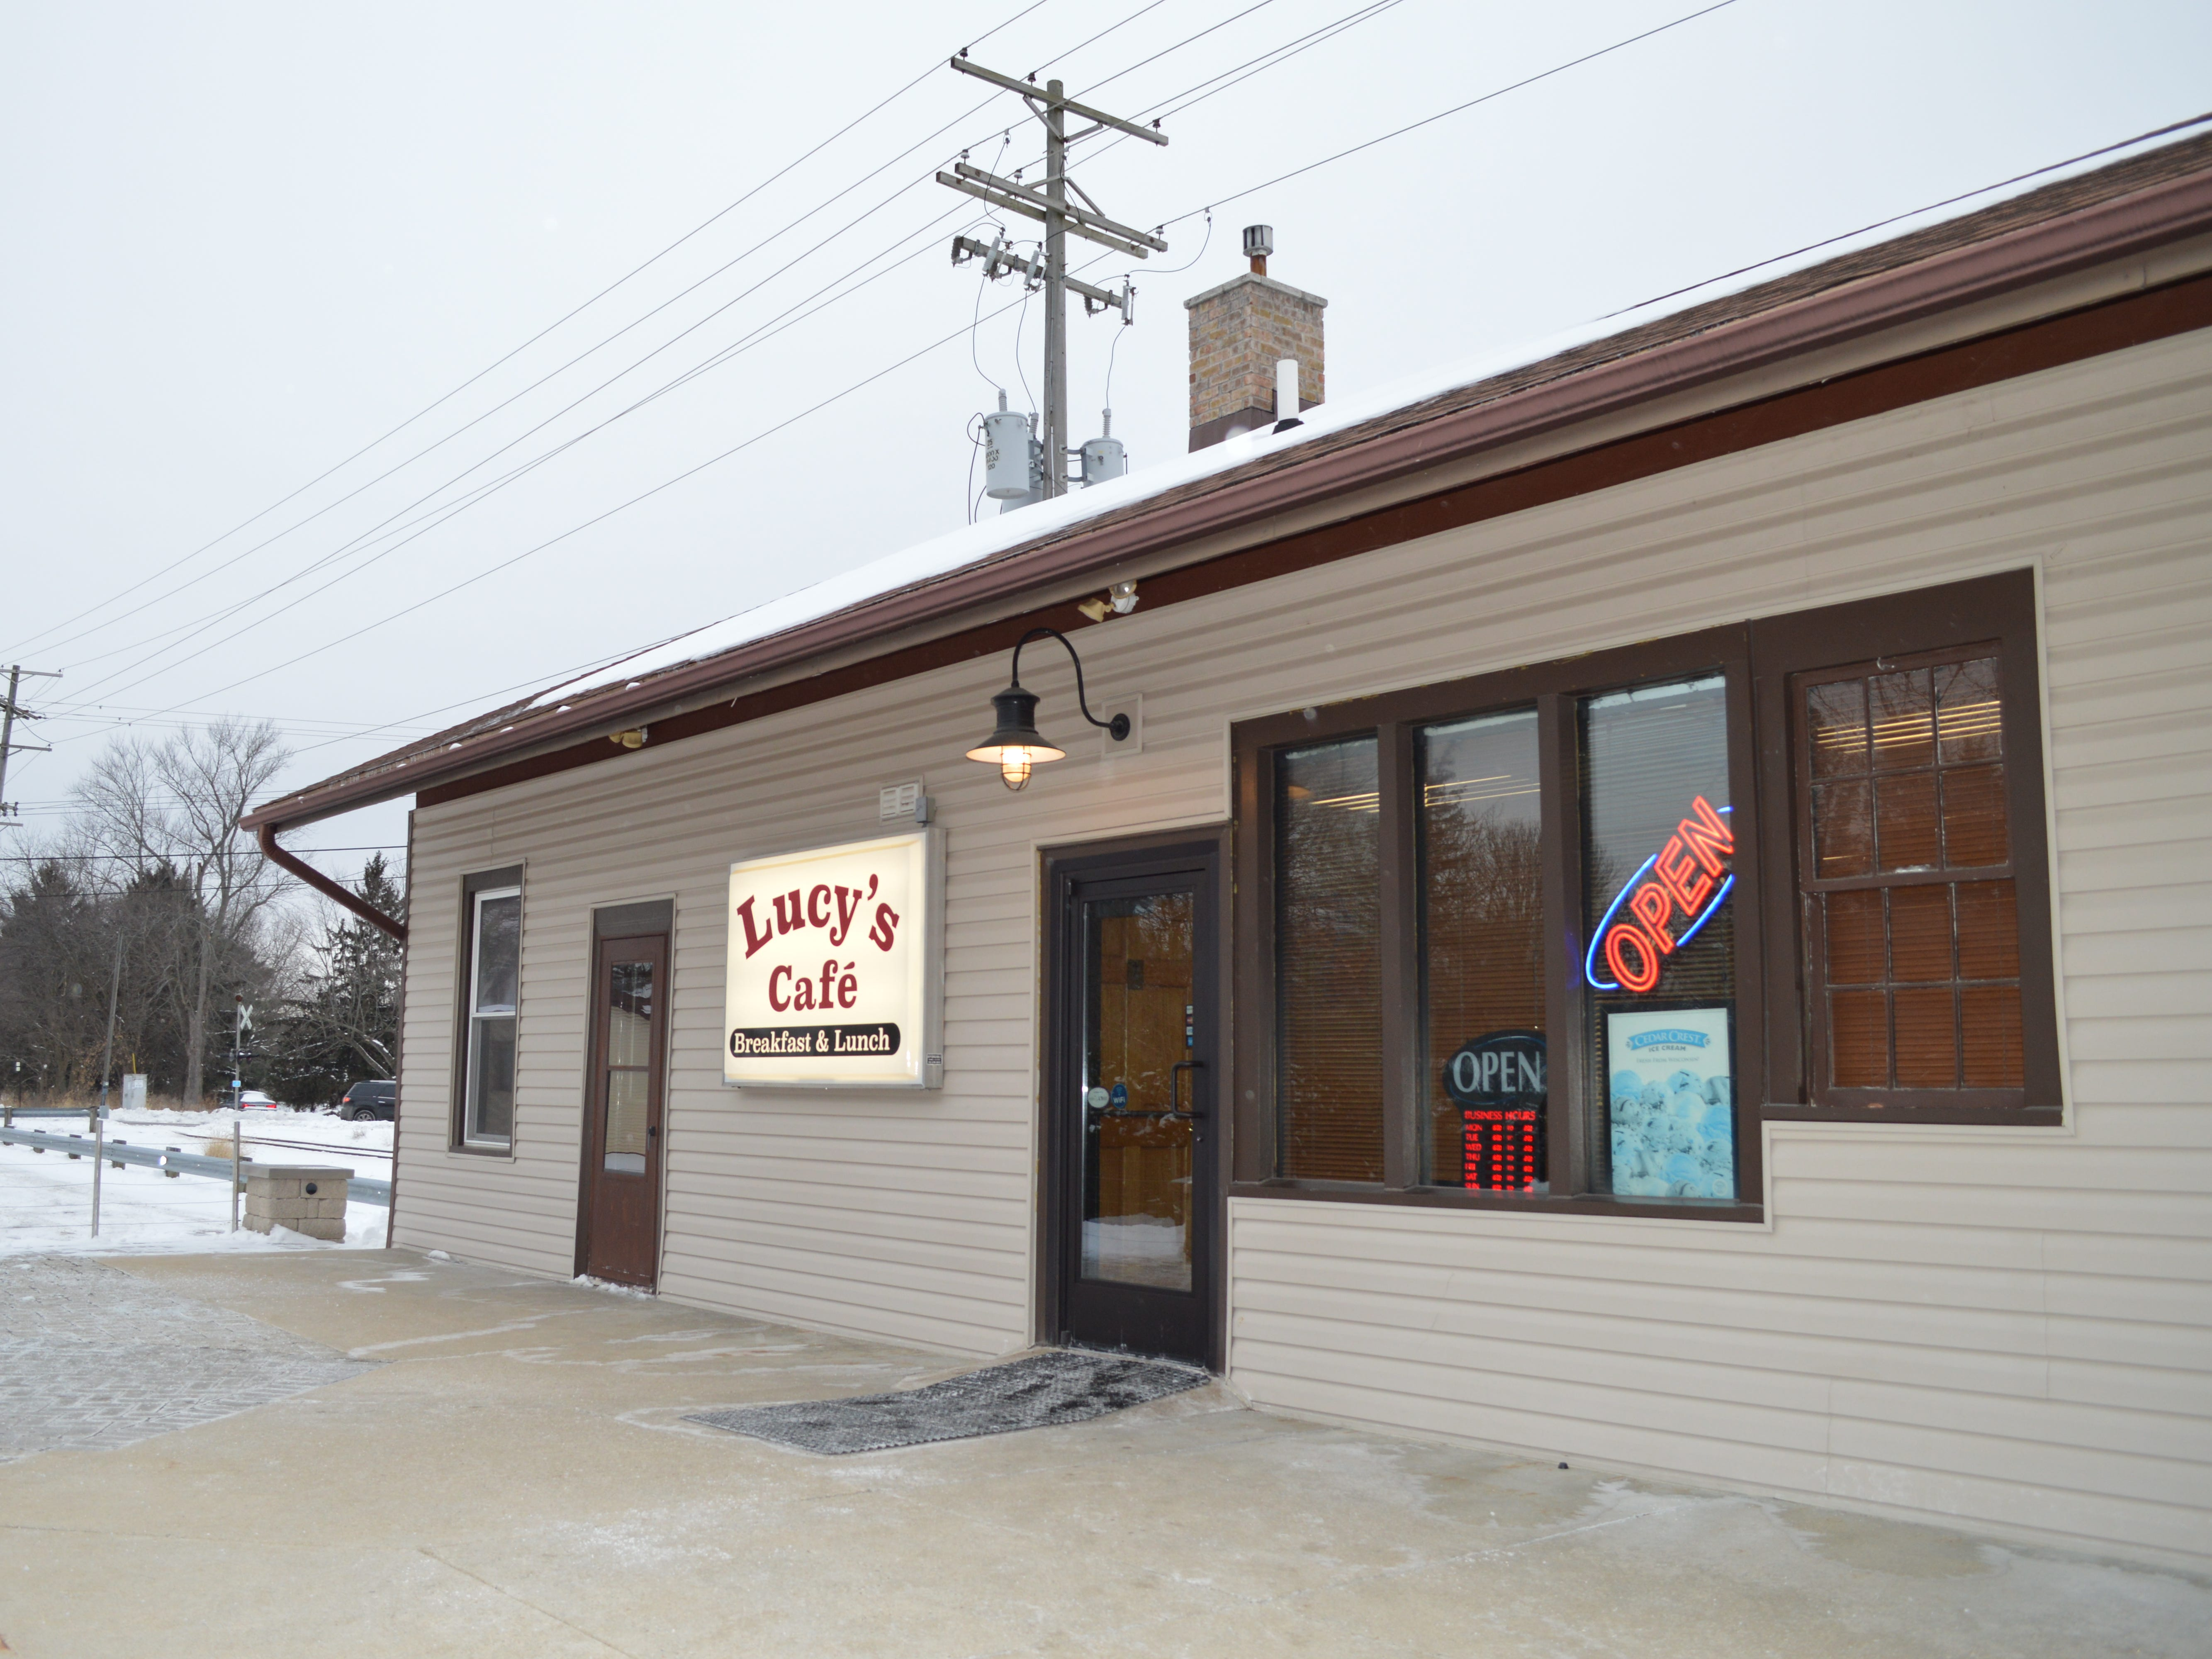 Lucy's Cafe is located at 132 N. Main St., North Prairie.